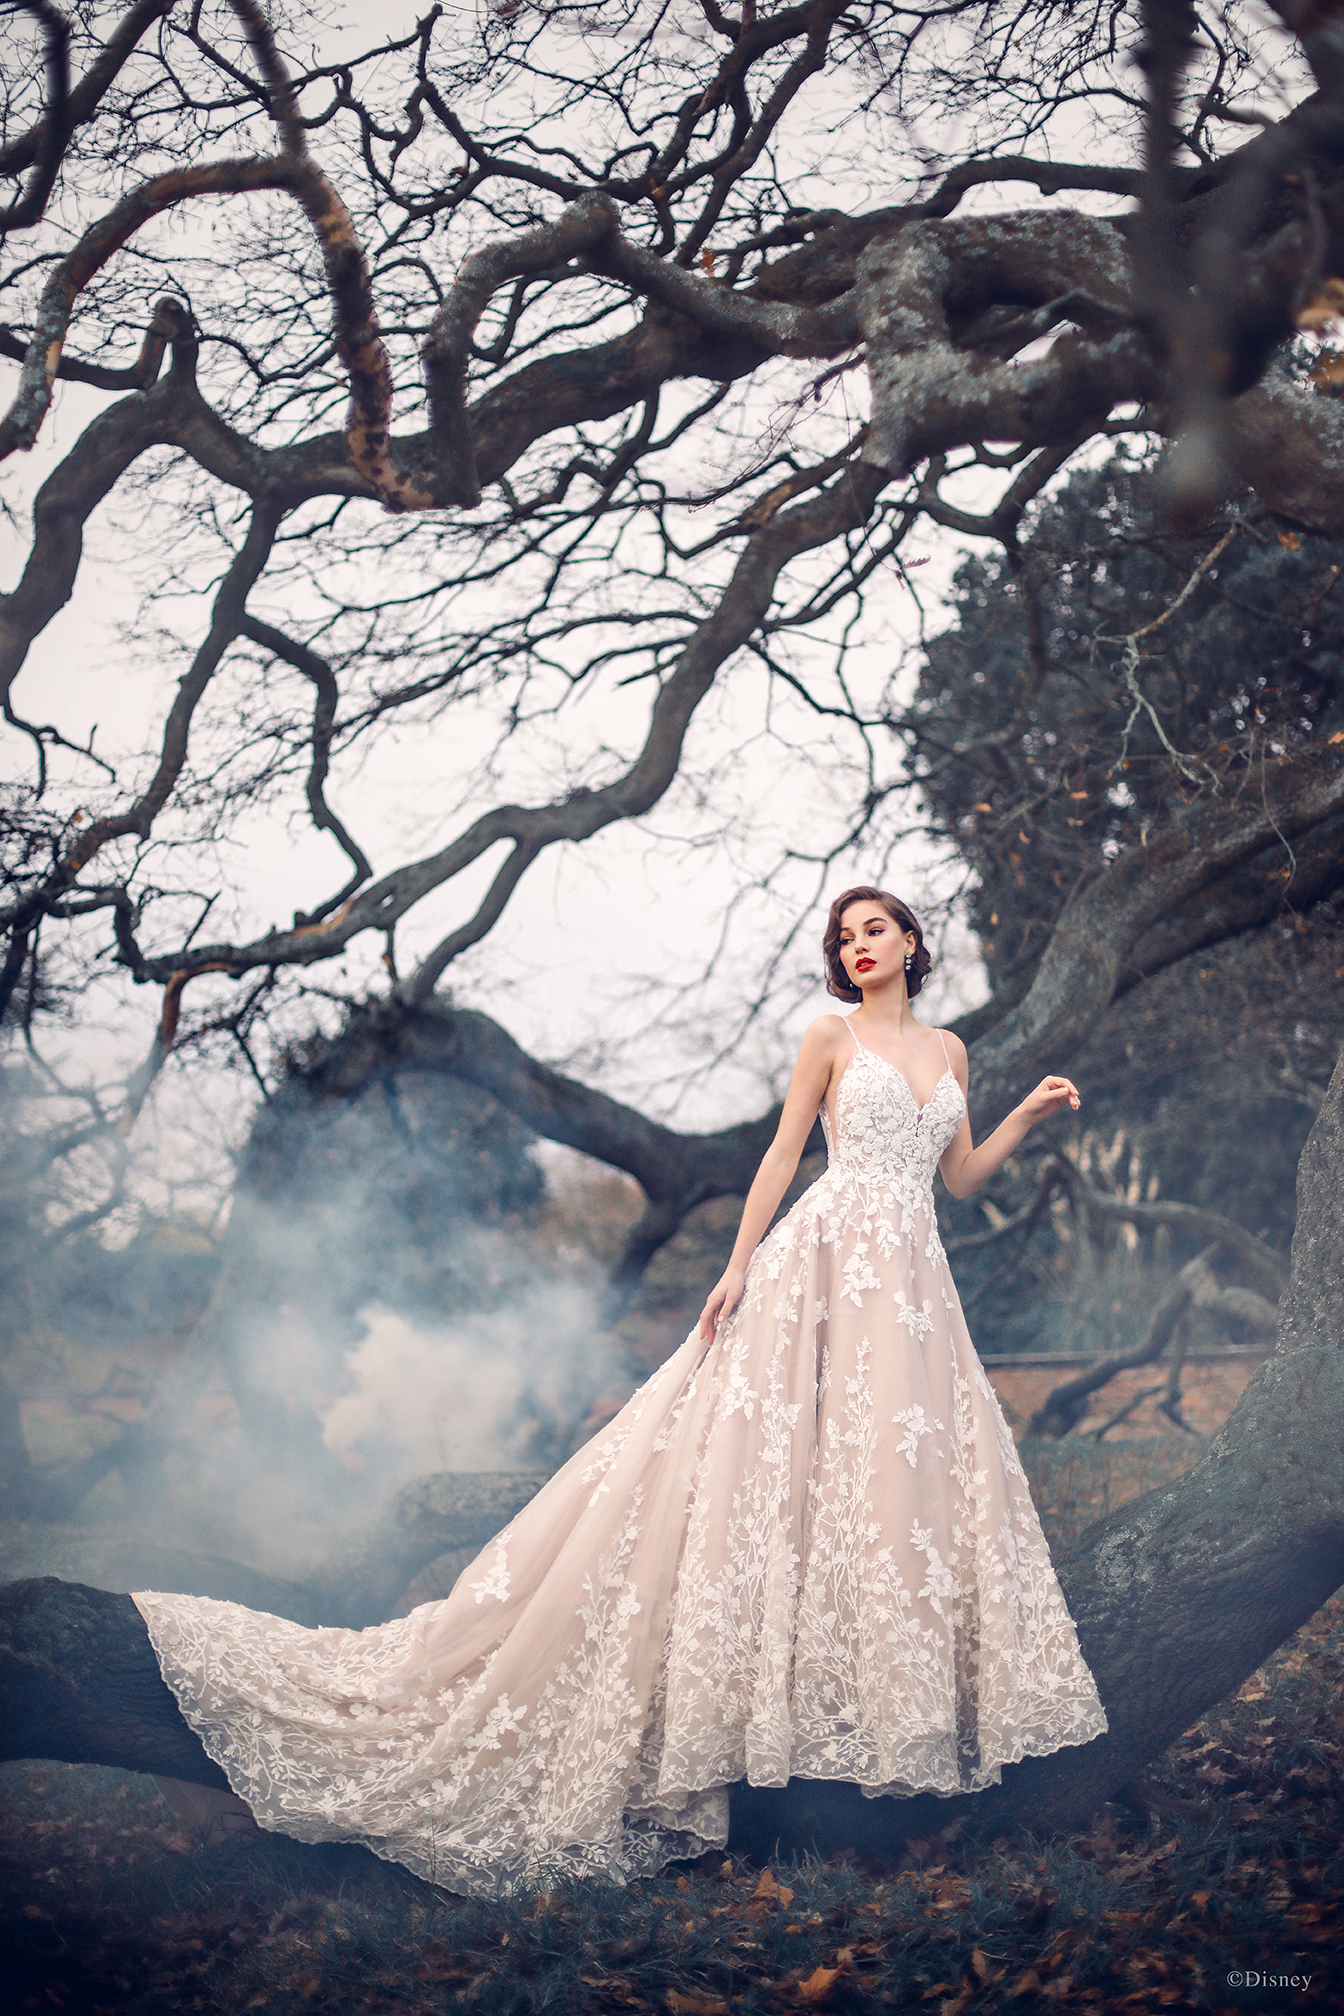 Multidimensional tonal beadwork creates a brilliant and intricate effect across the woodland floral motifs featured in the Snow White-inspired gown. A sparkling layer of tulle ensure this eye-catching gown shimmers at every angle.